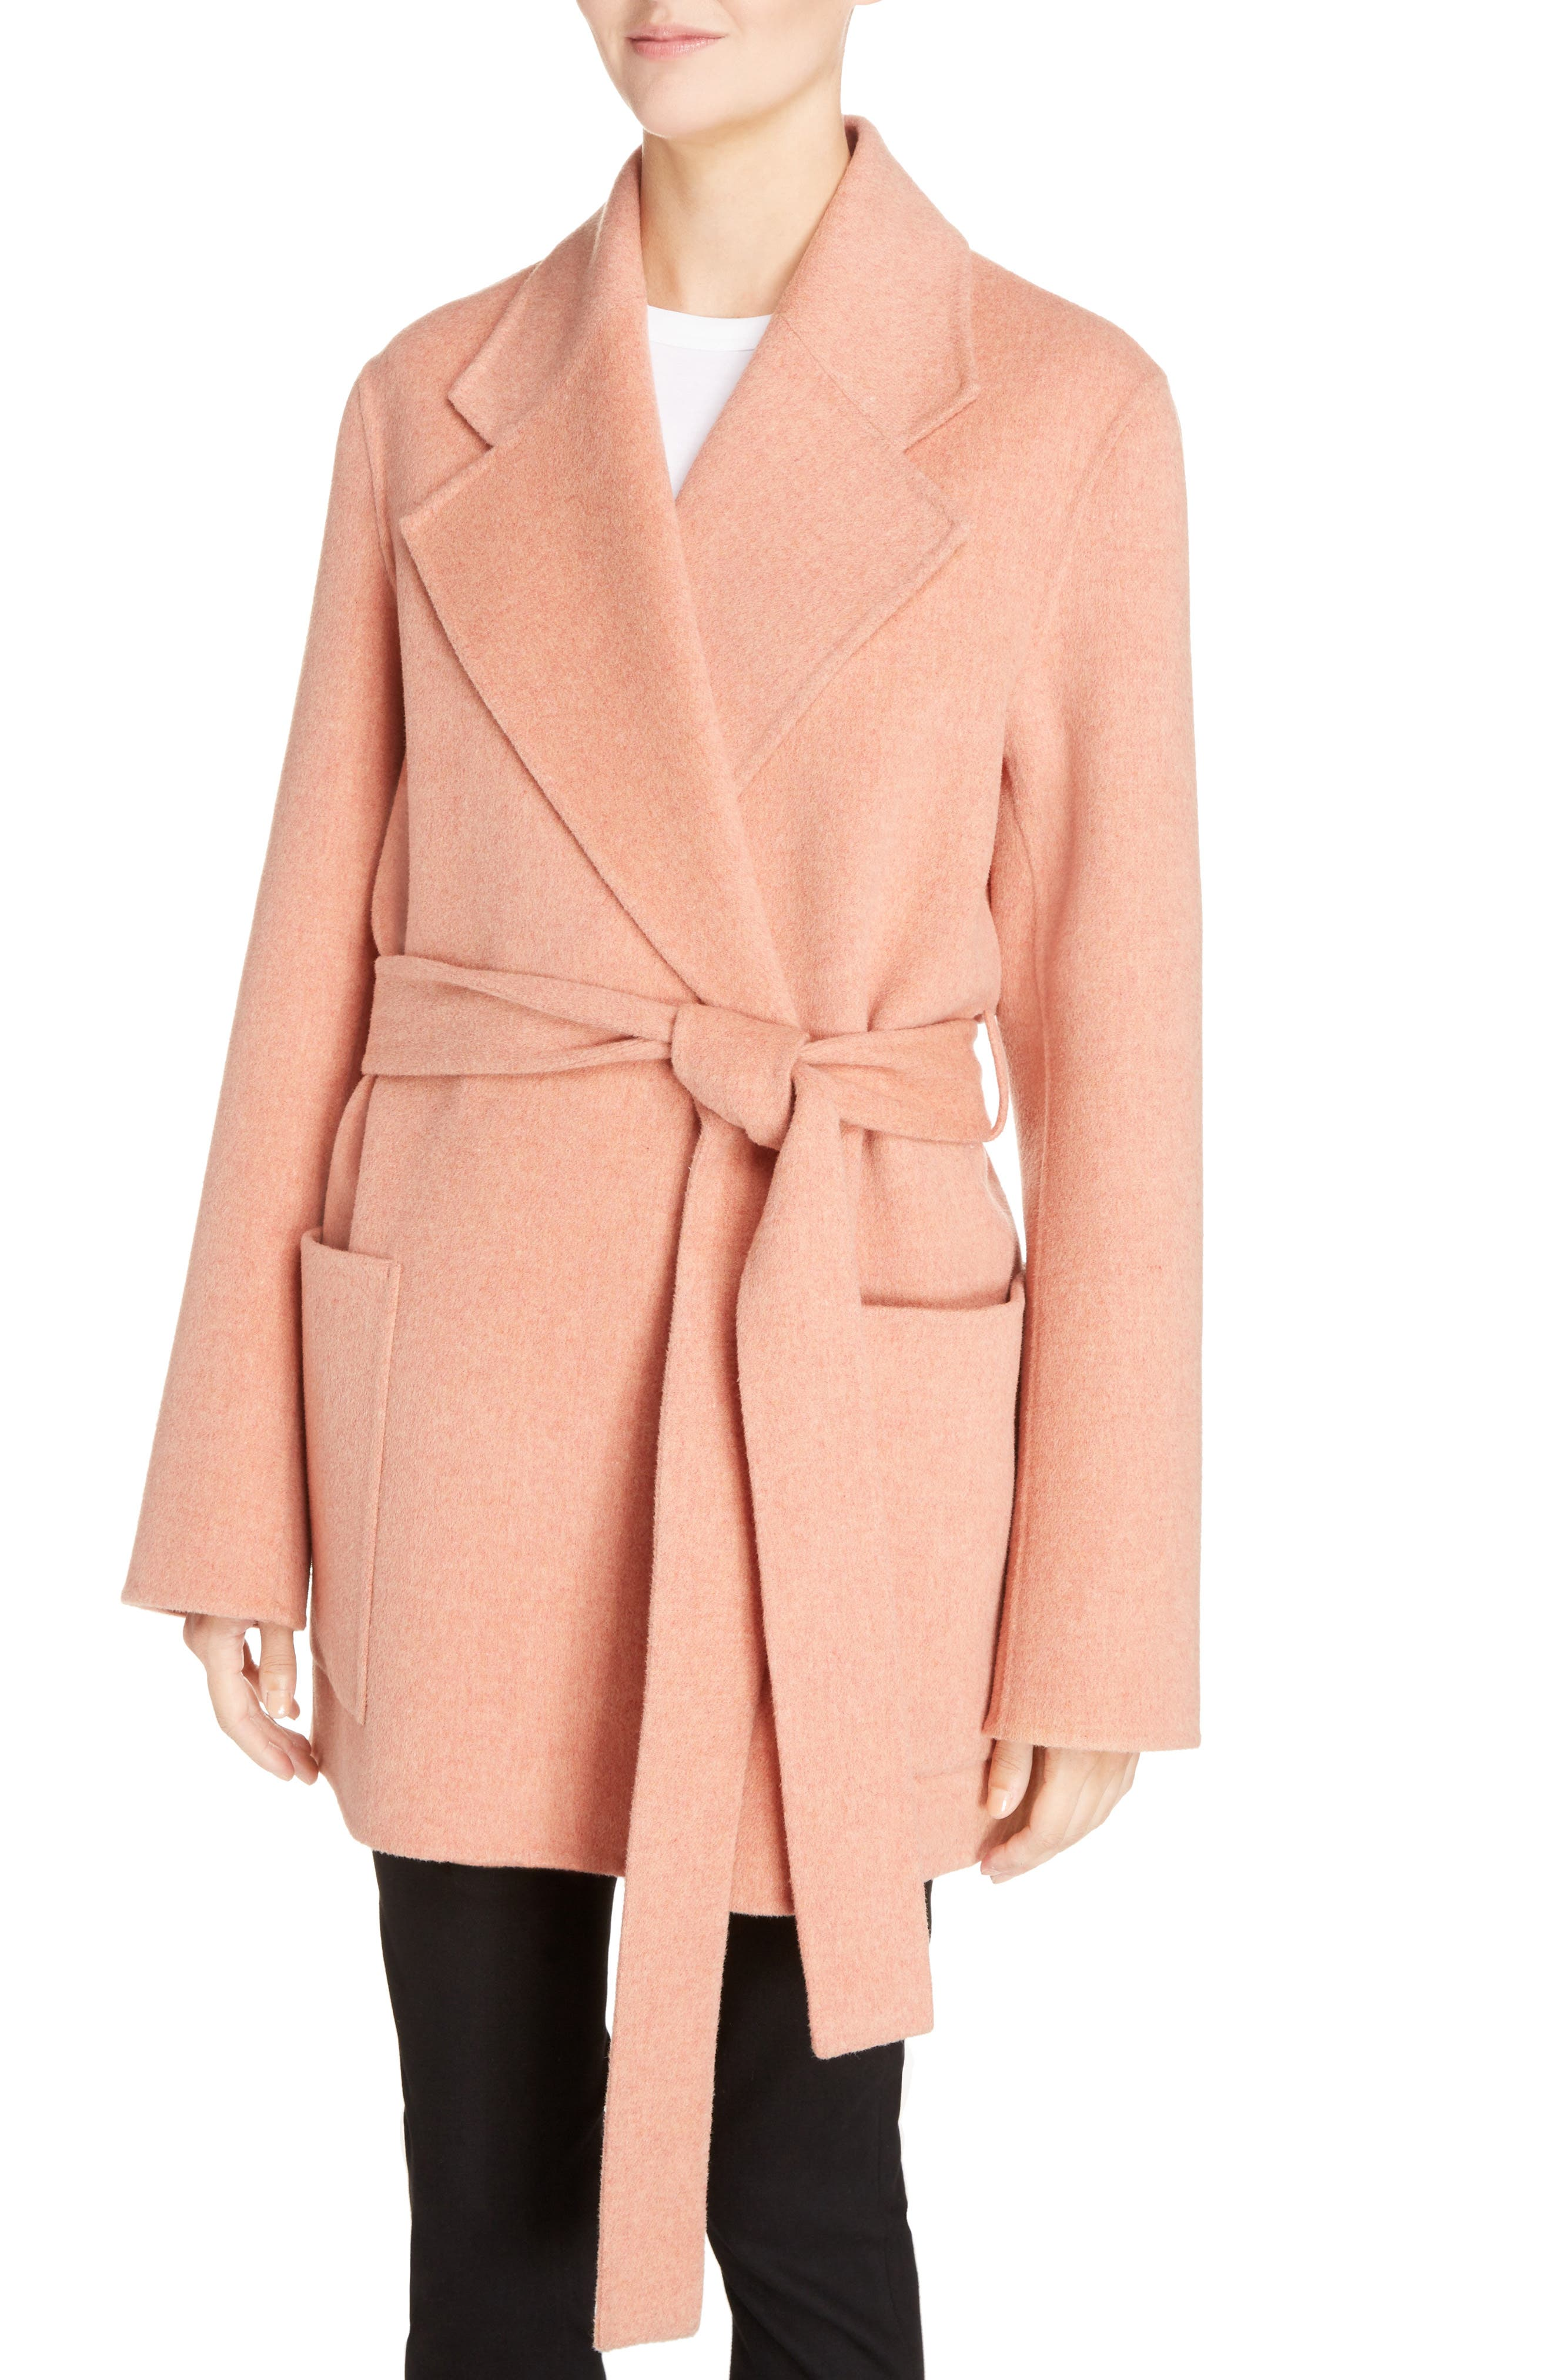 Anika Doublé Wool & Cashmere Coat,                             Alternate thumbnail 3, color,                             Rose Melange